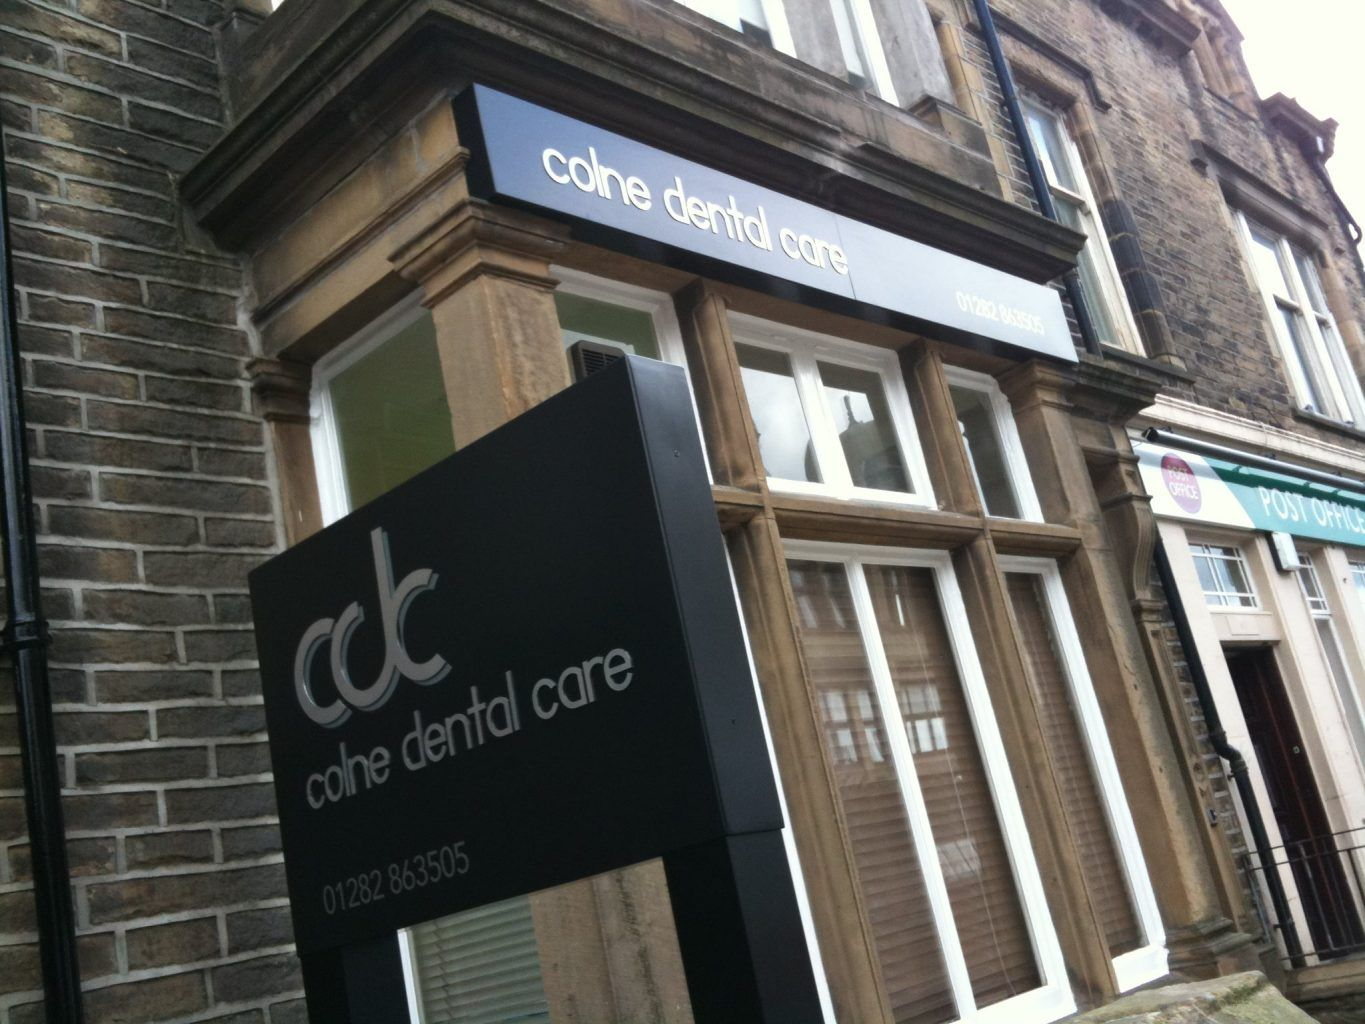 Colne dental Non illuminated sign tray with brushed stainless steel letters bonded to the face